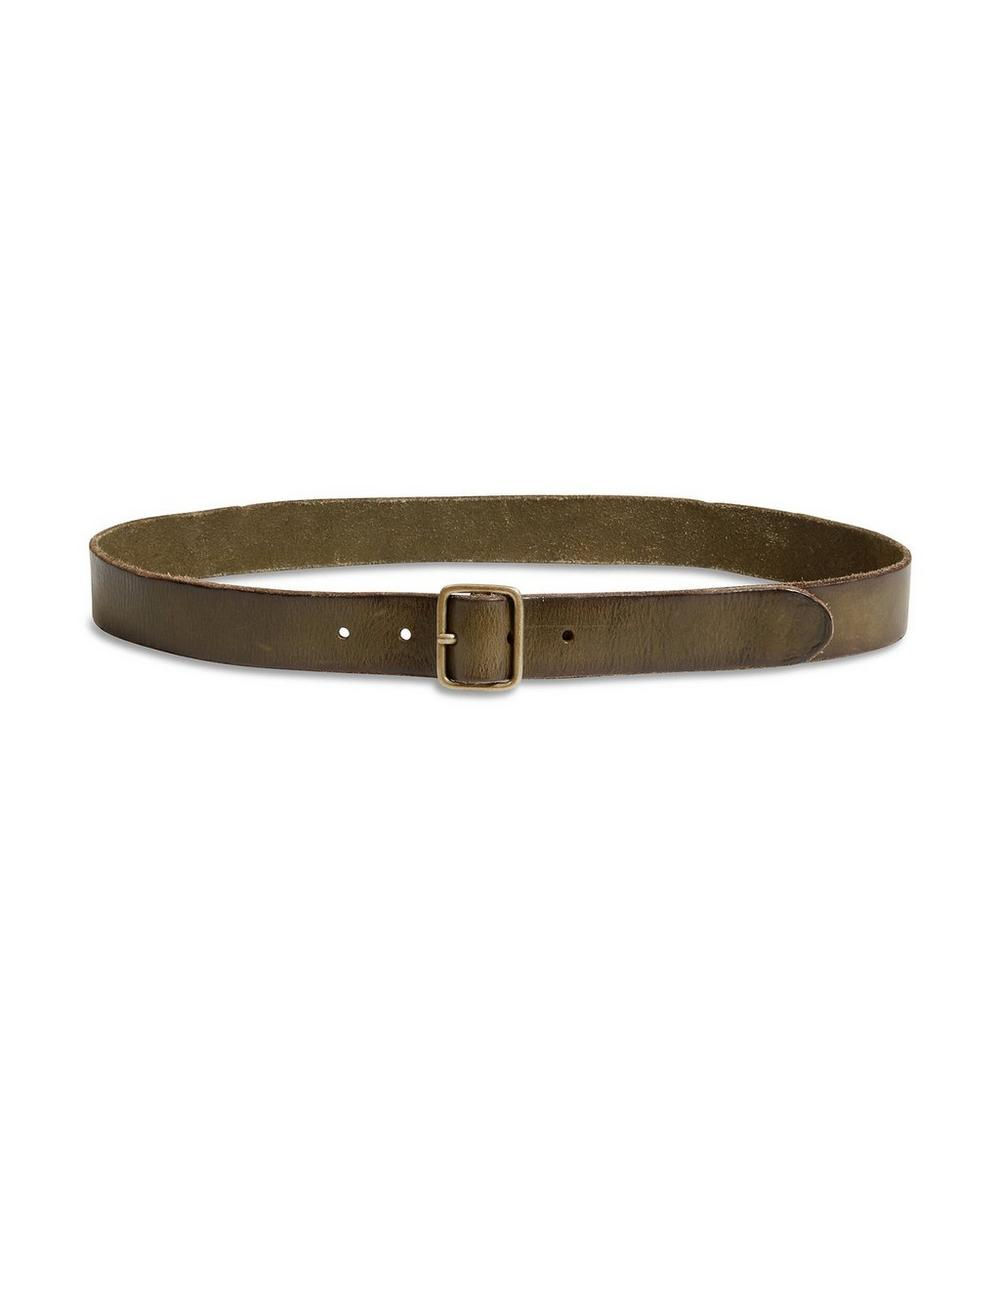 THE POINT BELT, image 1